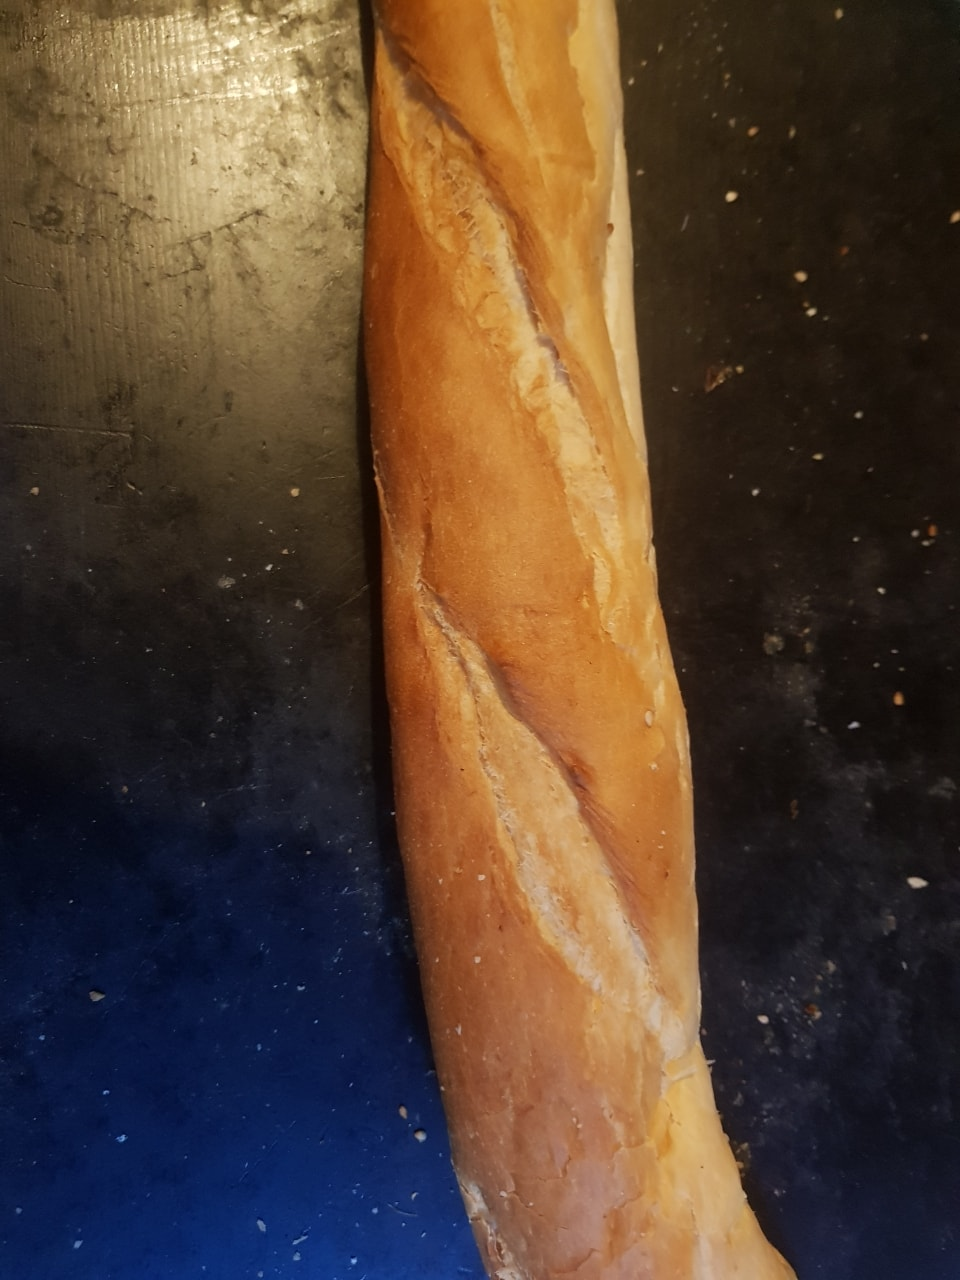 Two full size French baguette